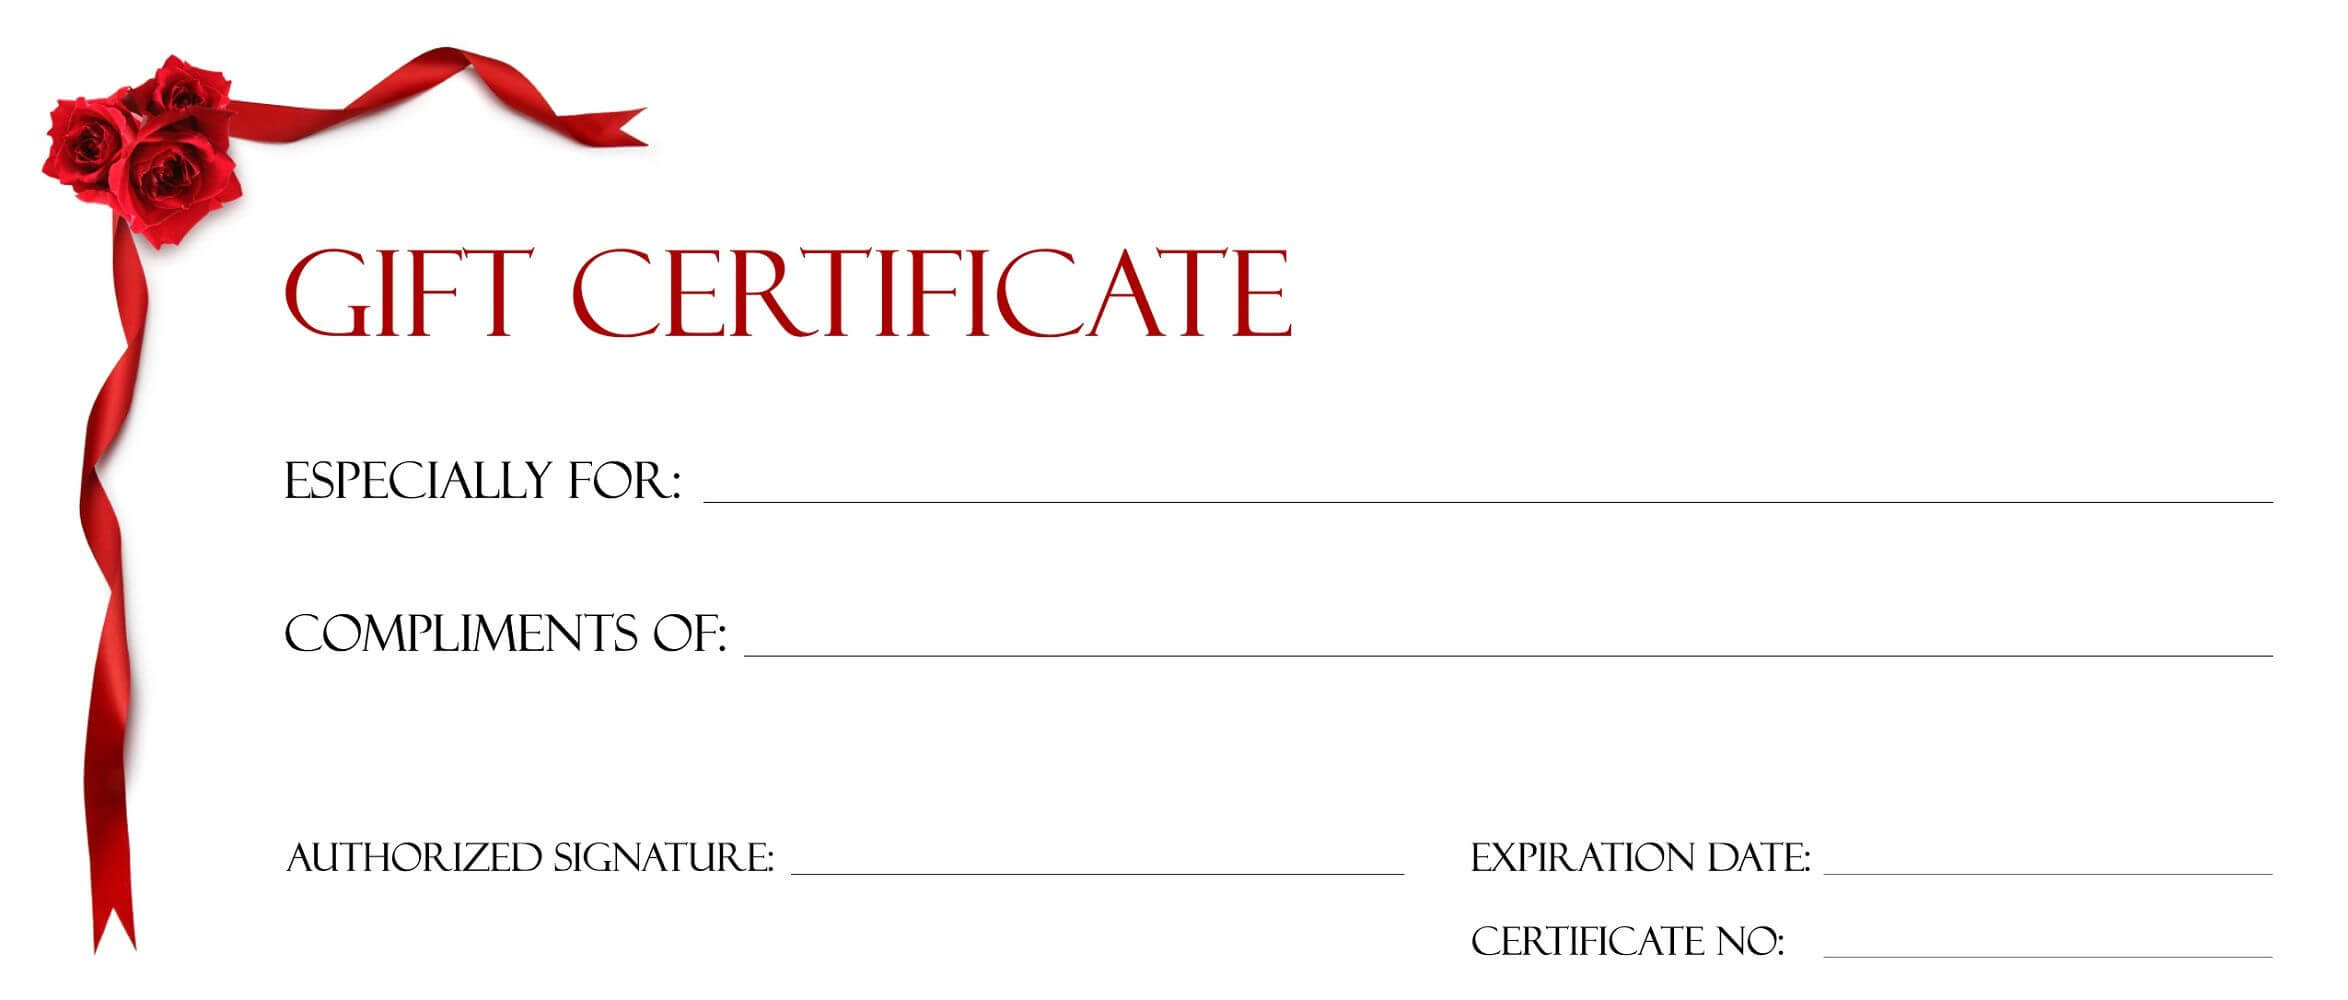 Gift Certificate Templates To Print | Gift Certificate Within Microsoft Gift Certificate Template Free Word